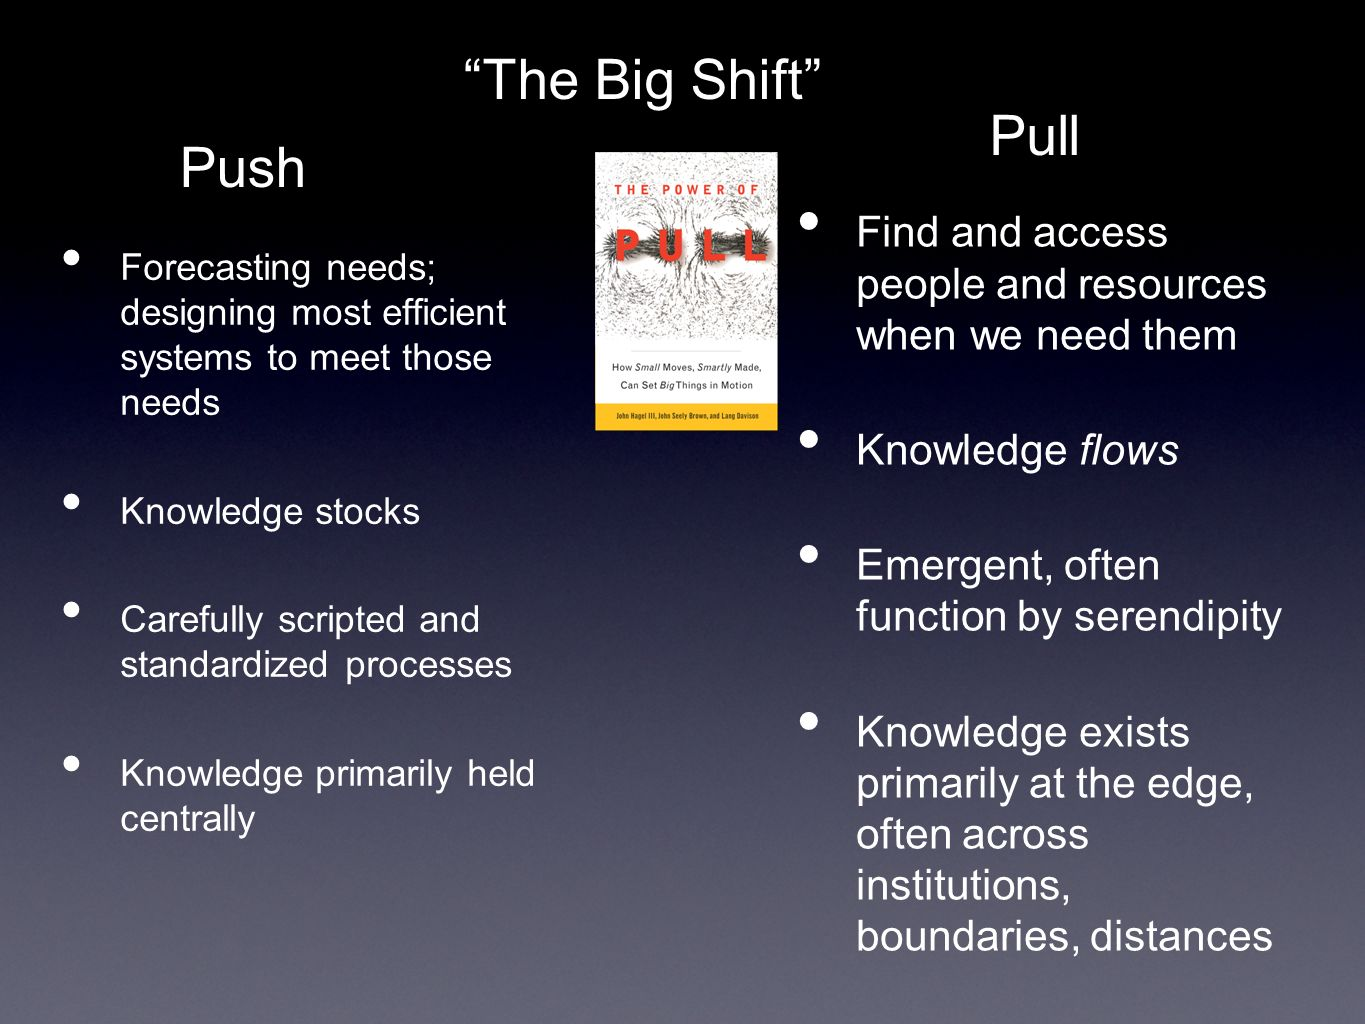 Forecasting needs; designing most efficient systems to meet those needs Knowledge stocks Carefully scripted and standardized processes Knowledge primarily held centrally Find and access people and resources when we need them Knowledge flows Emergent, often function by serendipity Knowledge exists primarily at the edge, often across institutions, boundaries, distances Push Pull The Big Shift